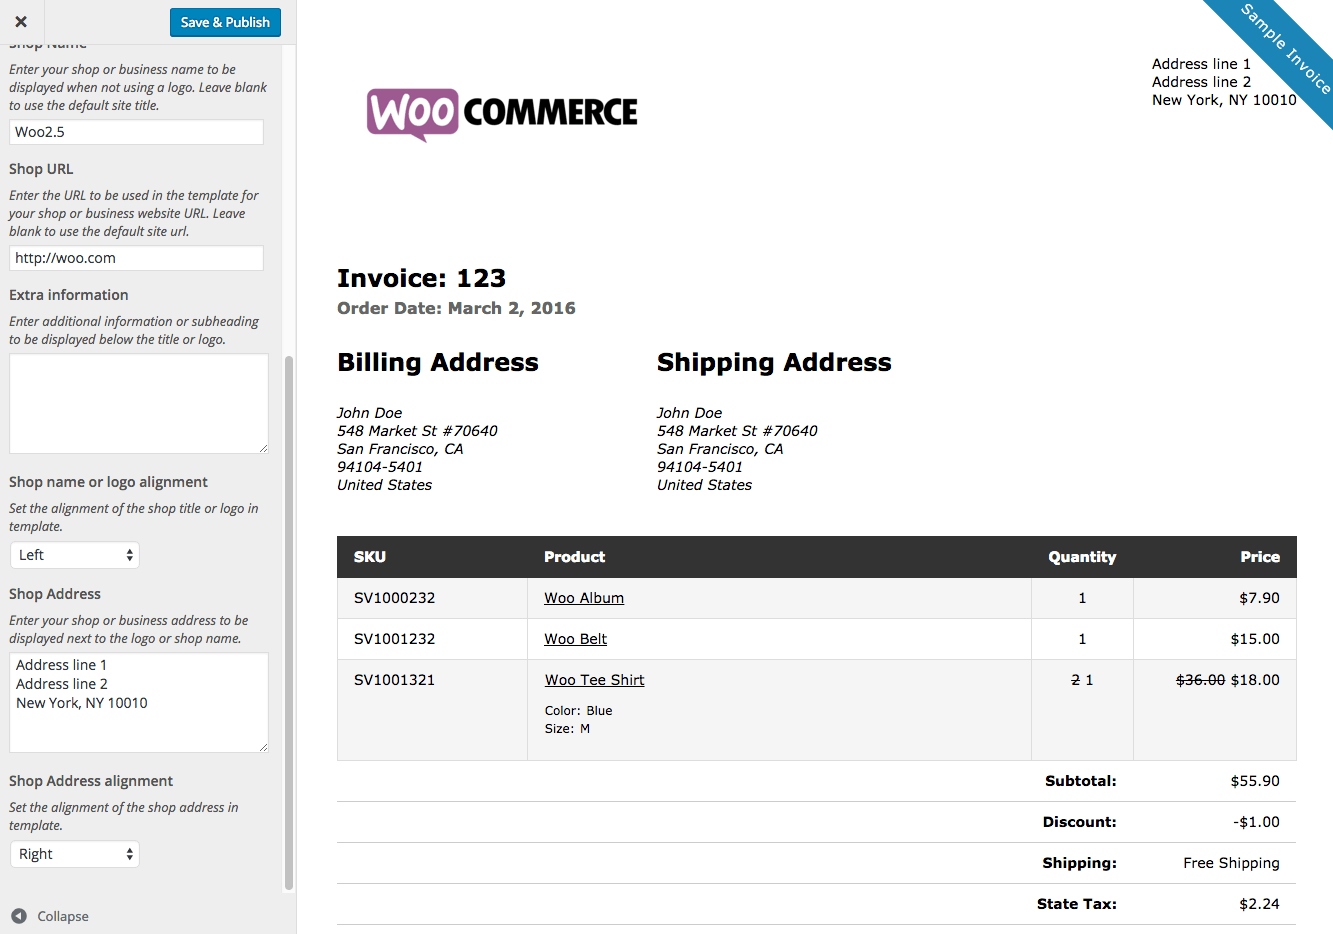 Weirdmailus  Stunning Woocommerce Print Invoices Amp Packing Lists  Woocommerce Docs With Great Woocommerce Print Invoices  Packing Lists Customizer With Archaic Sales Invoice Also Invoices In Addition Proforma Invoice And Paypal Invoice Fee As Well As Invoices Templates Additionally Whats An Invoice From Docswoocommercecom With Weirdmailus  Great Woocommerce Print Invoices Amp Packing Lists  Woocommerce Docs With Archaic Woocommerce Print Invoices  Packing Lists Customizer And Stunning Sales Invoice Also Invoices In Addition Proforma Invoice From Docswoocommercecom